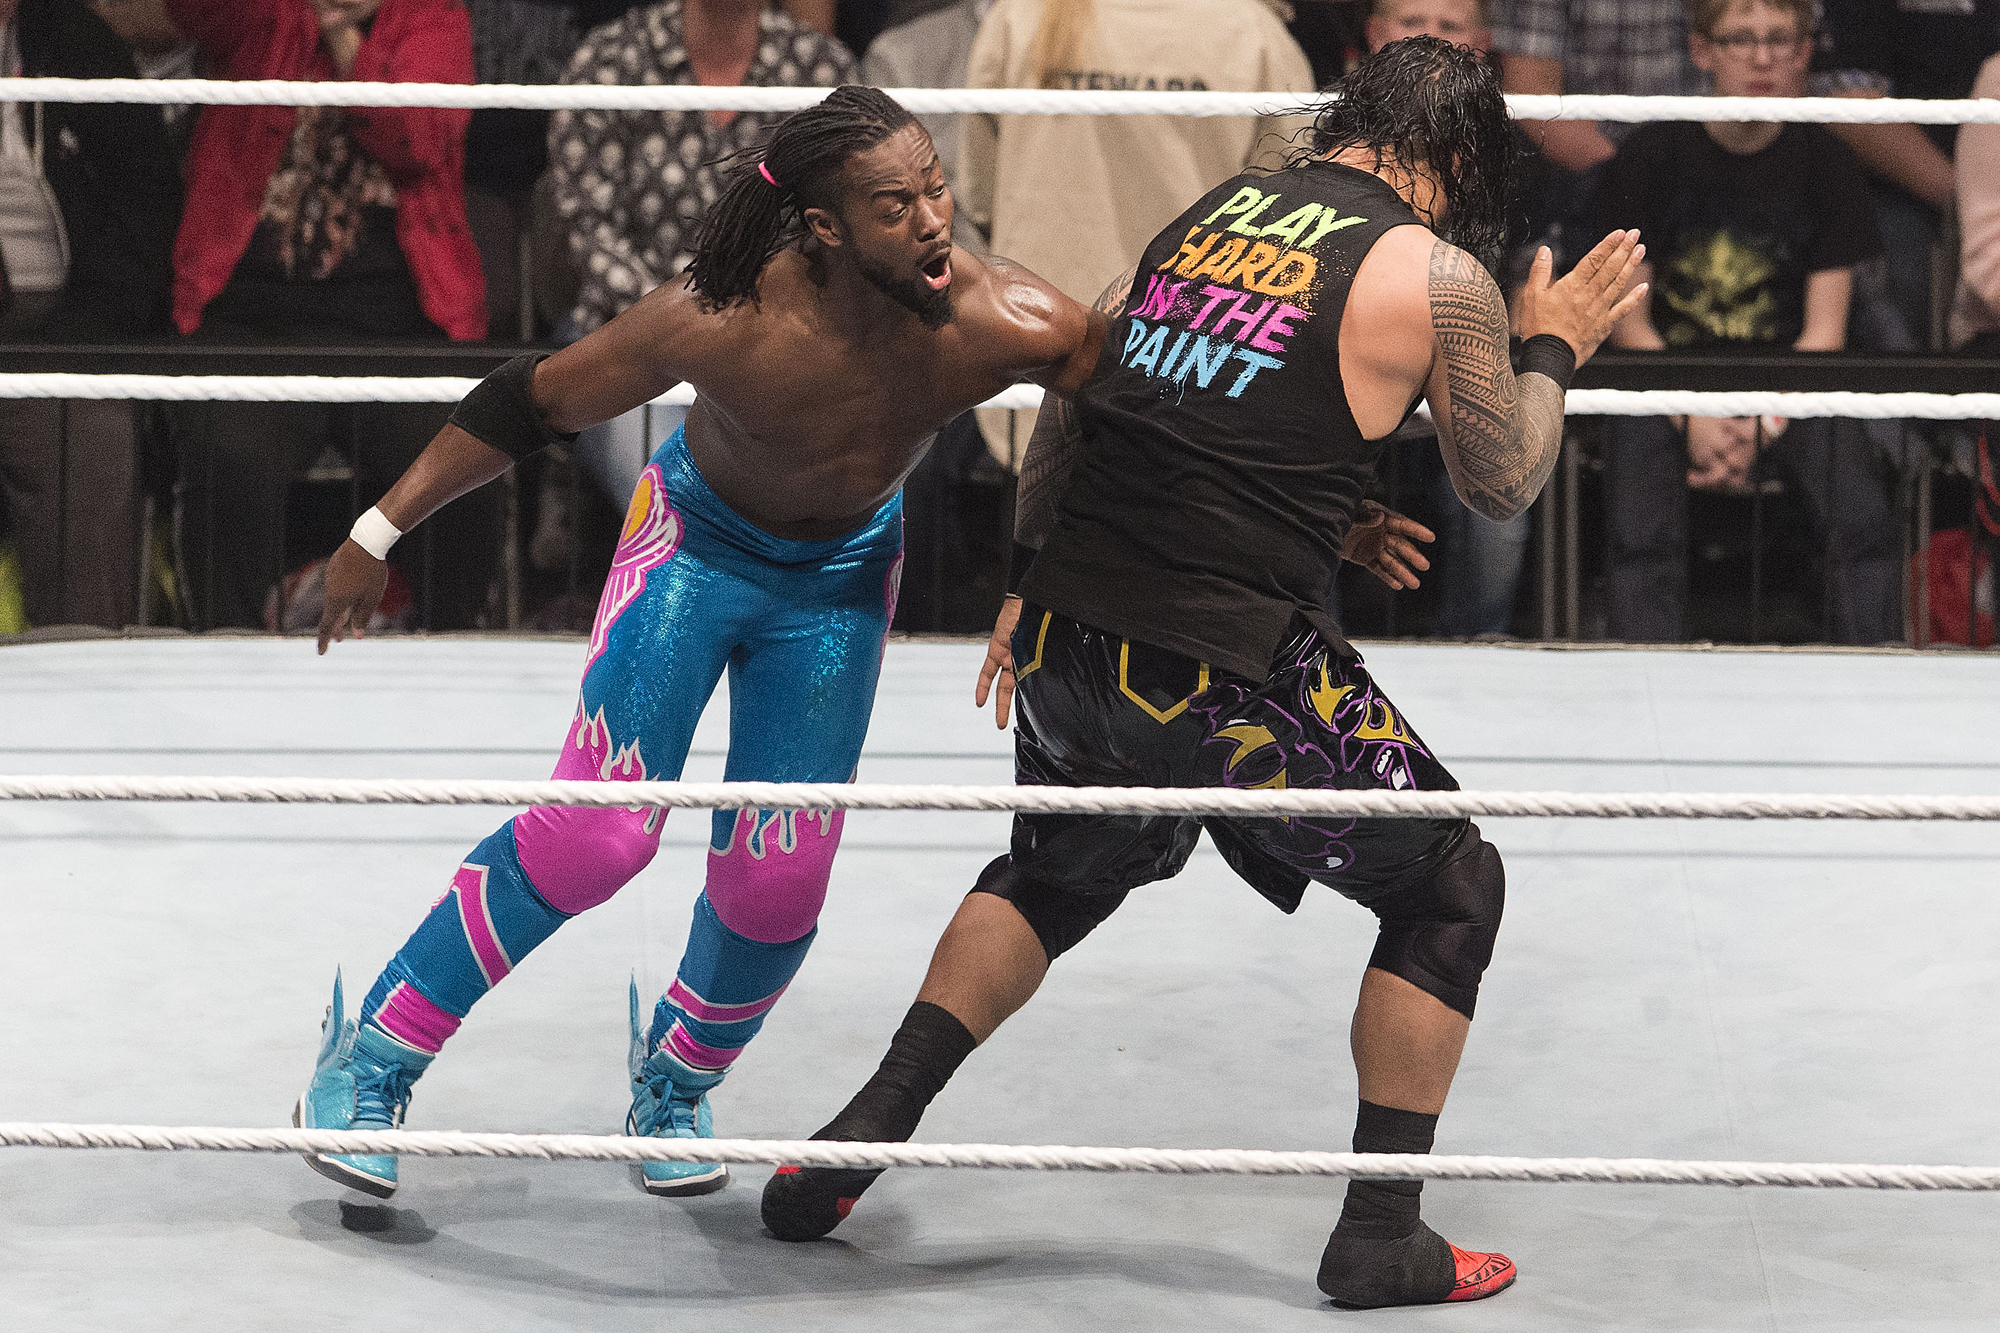 The New Day Competes In Ring Against Usos At Road To WrestleMania Lanxess Arena On February 11 2016 Cologne Germany